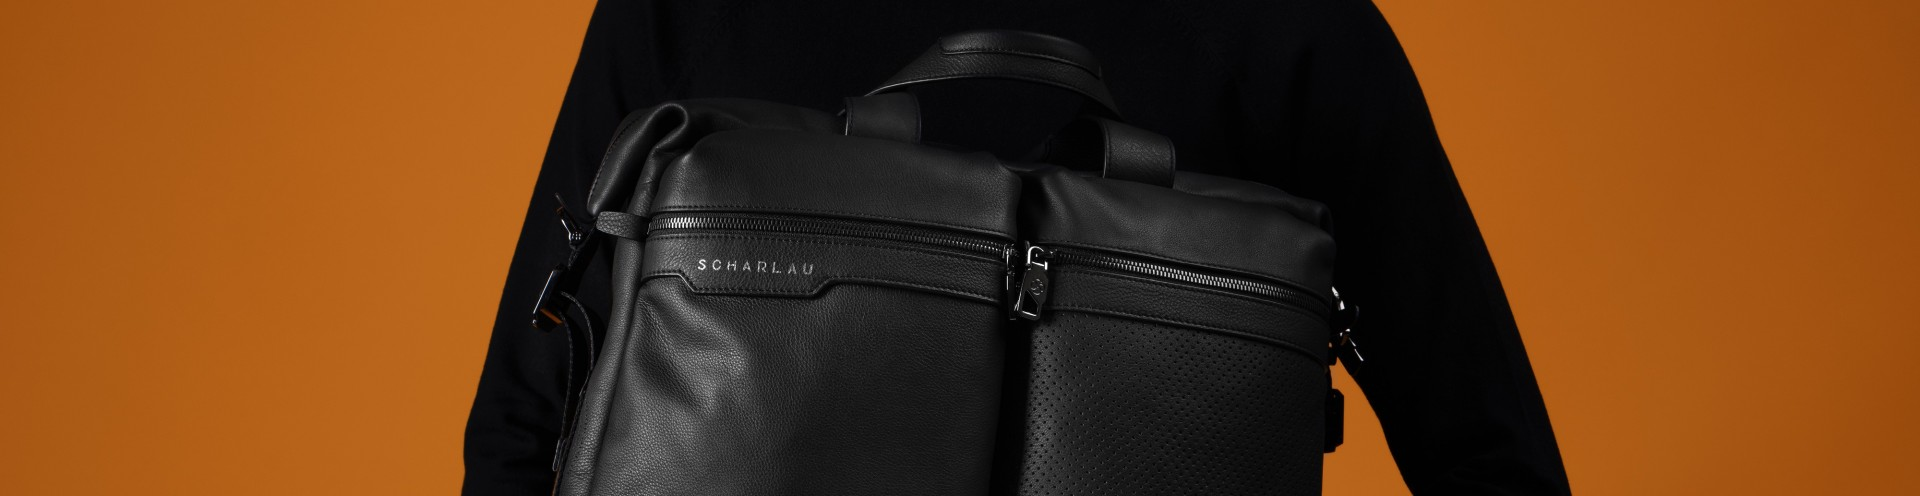 Men's Personalized Leather Briefbags